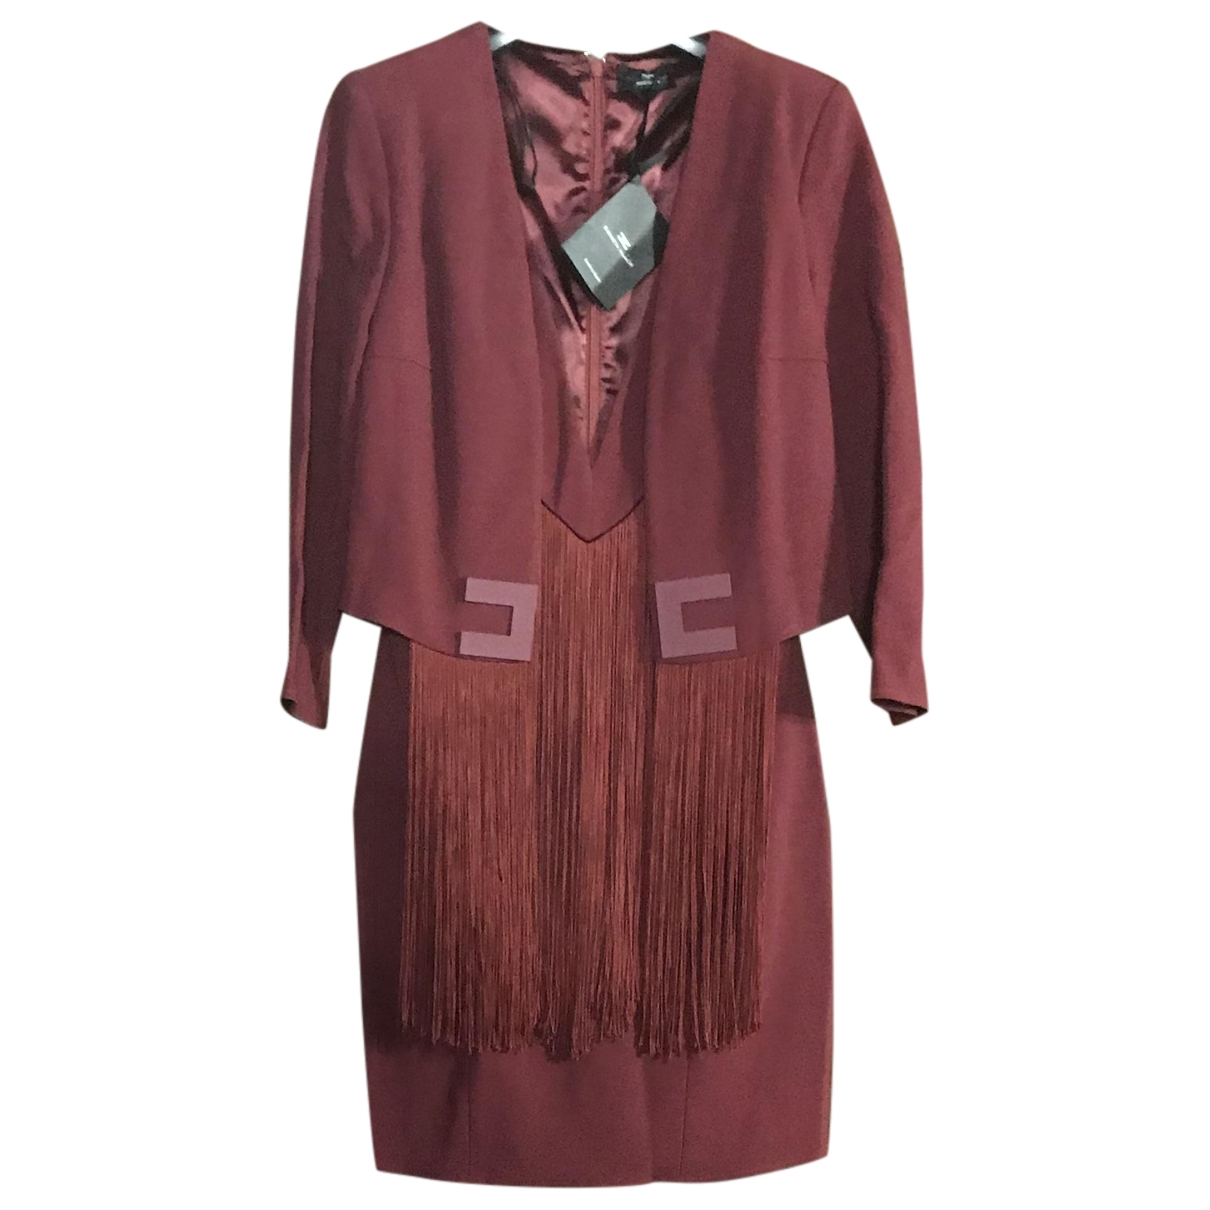 Elisabetta Franchi \N Burgundy dress for Women 40 IT